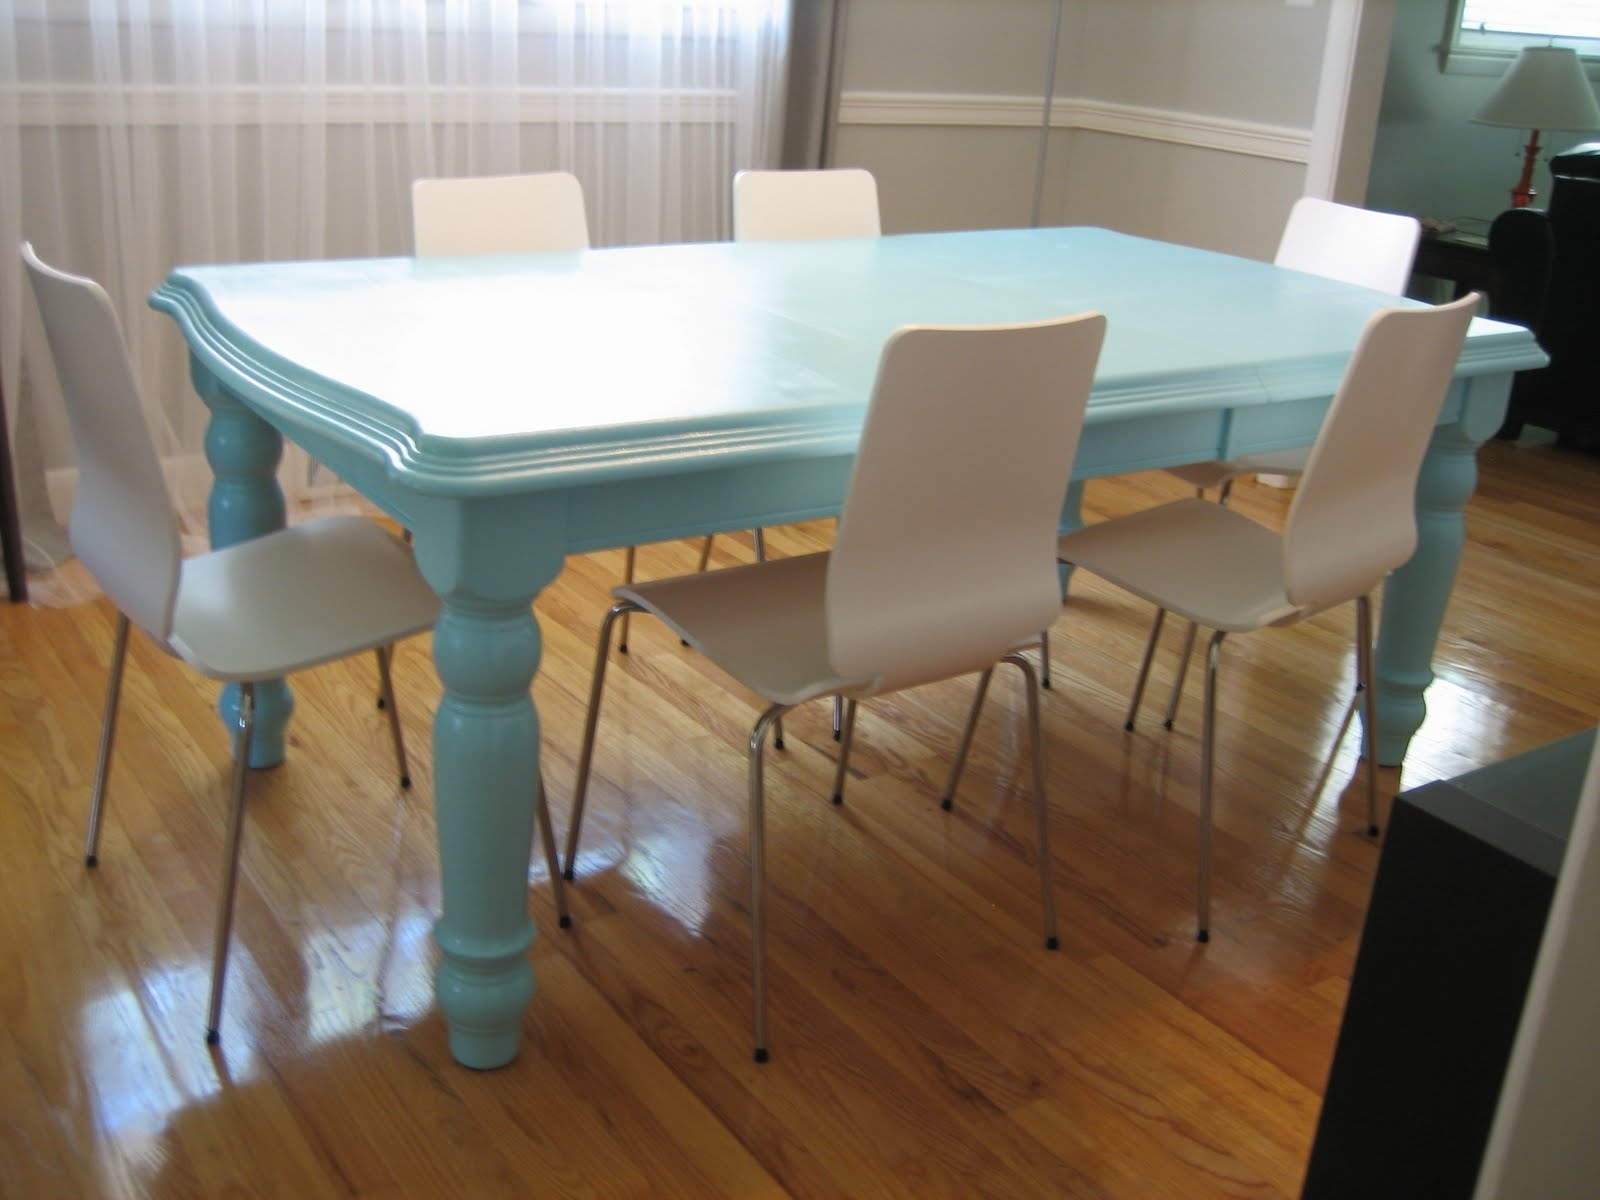 Durham Salad Days: Blue Dining Tabledone & Done intended for Most Current Blue Dining Tables